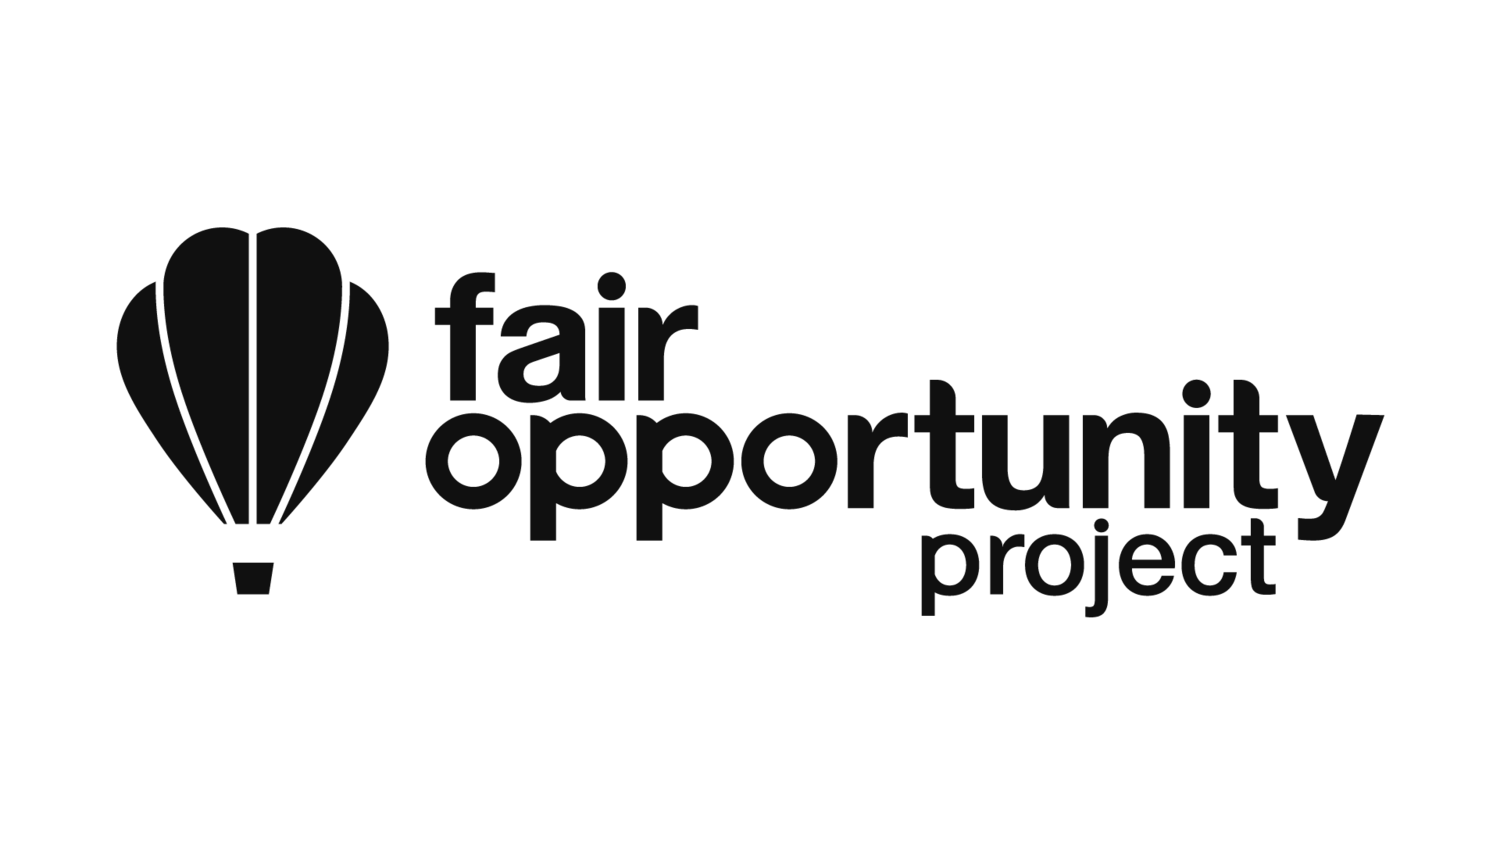 Fair Opportunity Project_black.png